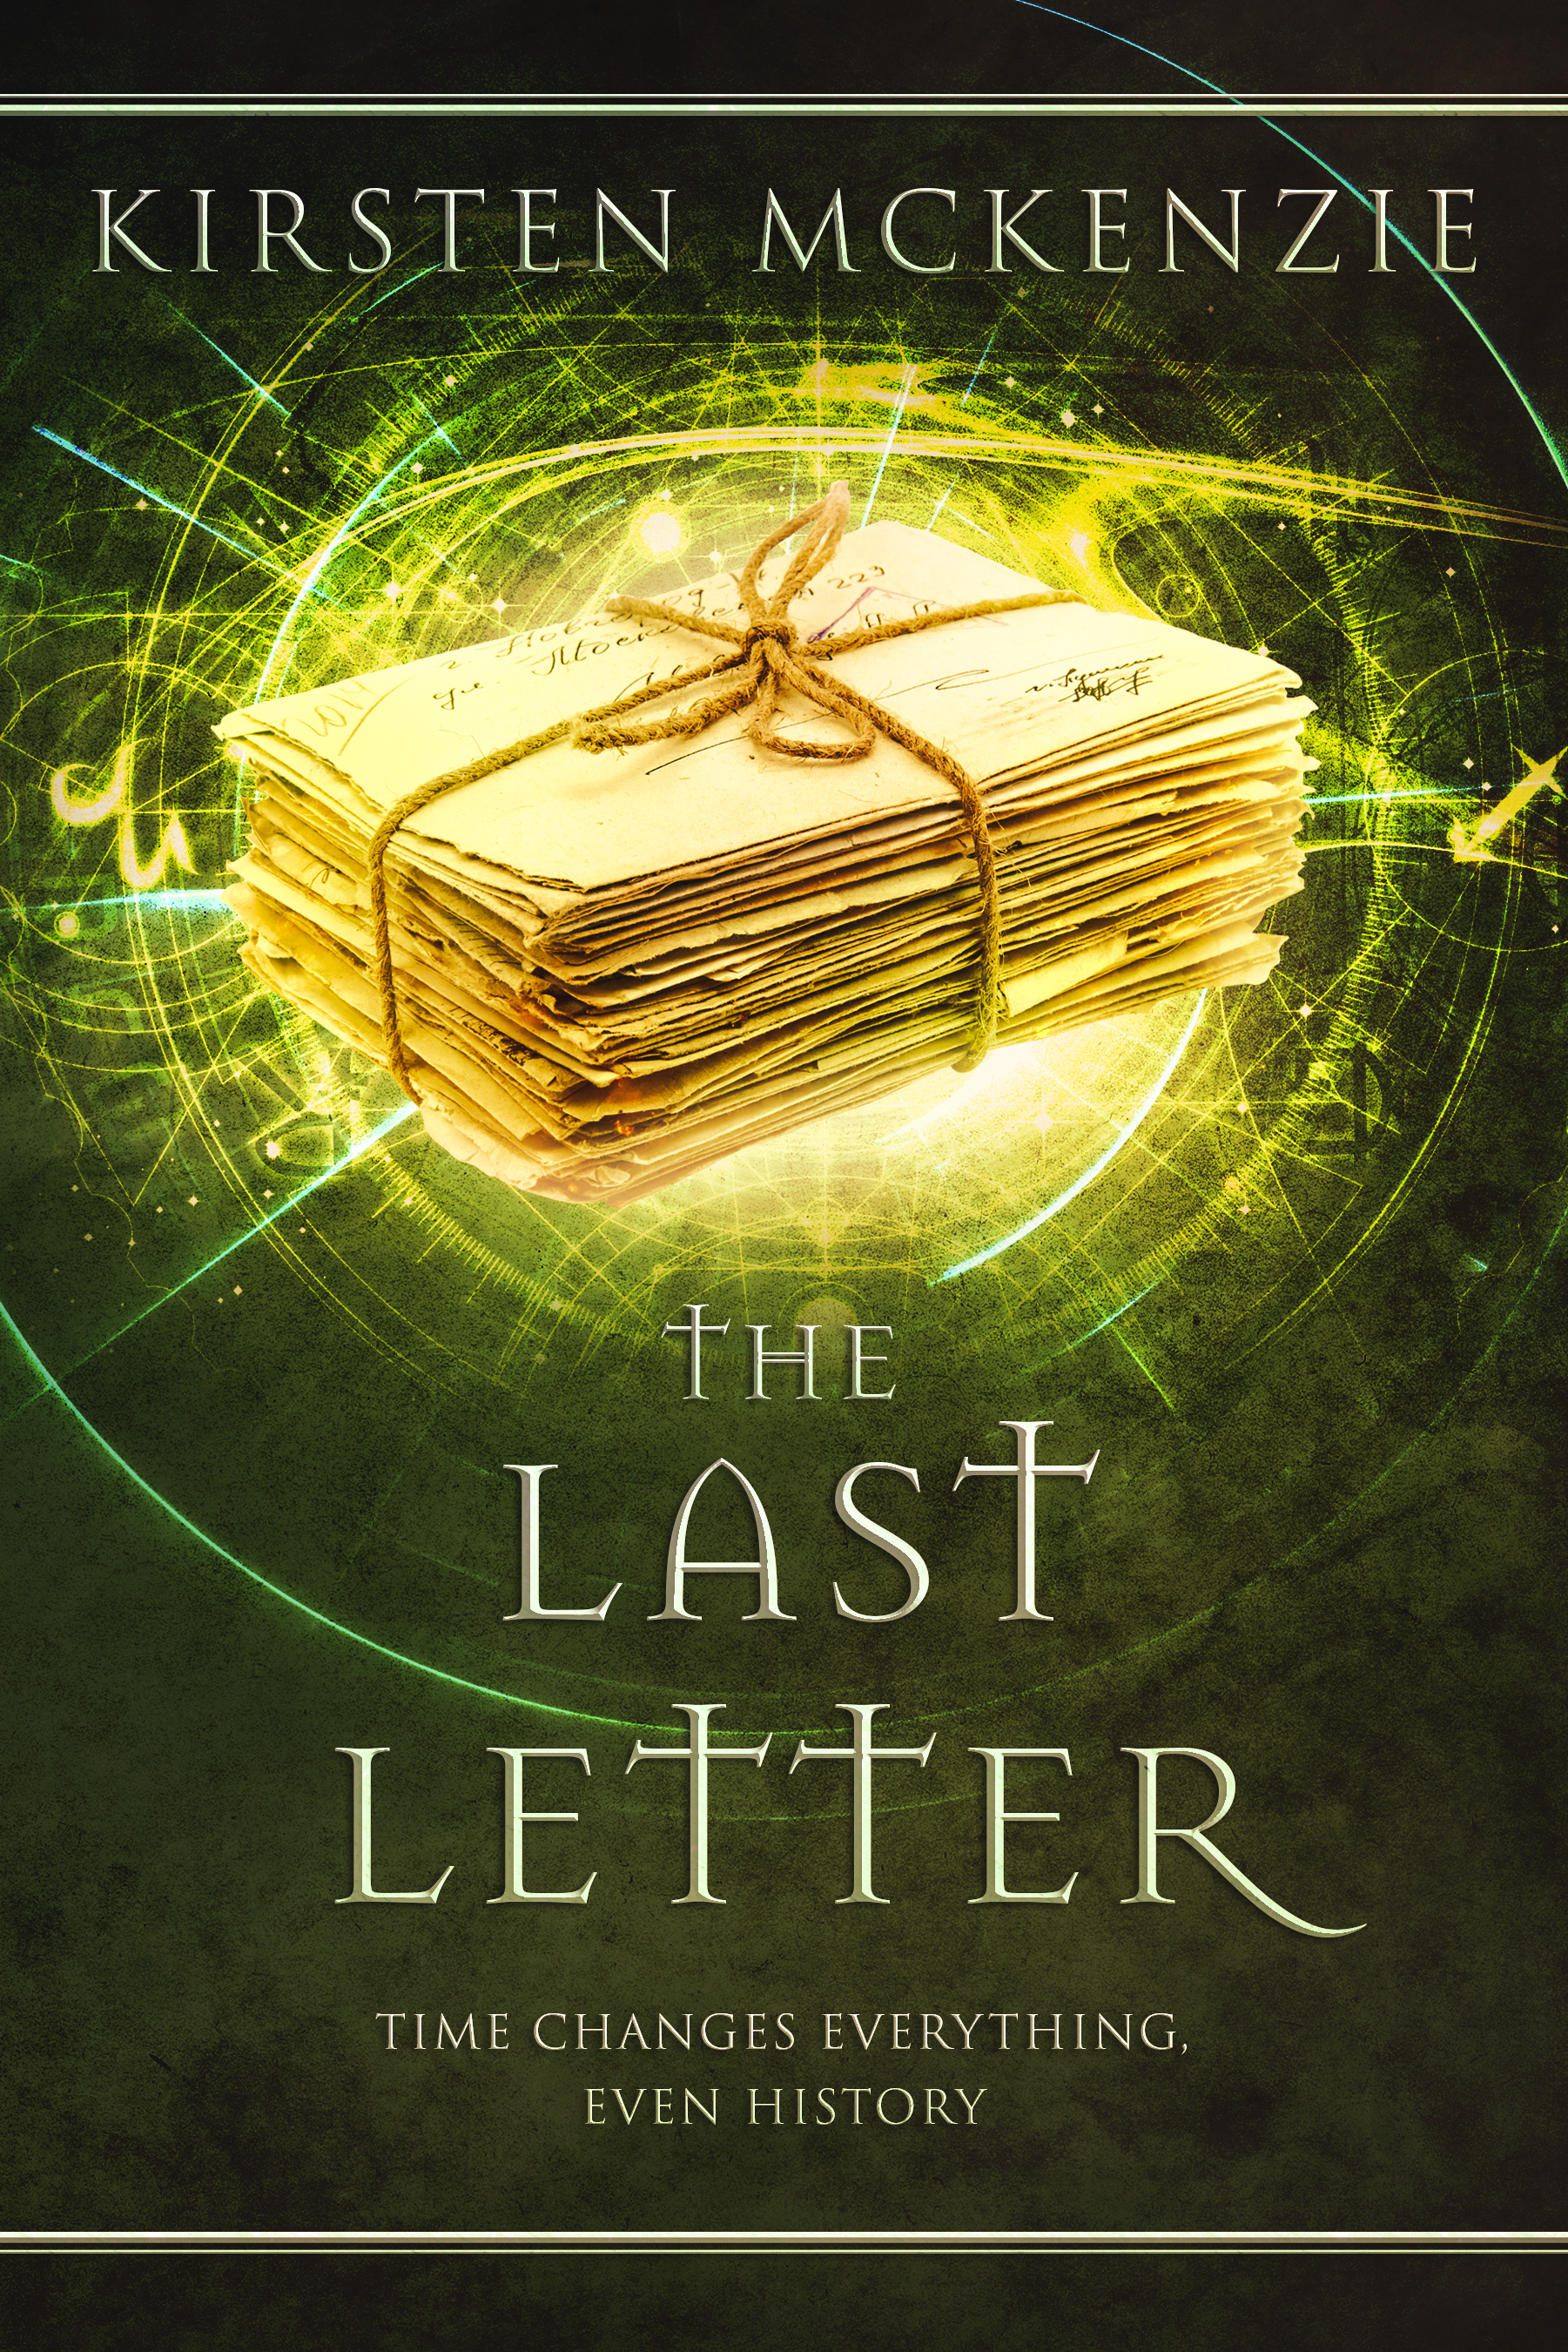 The Last Letter - Book #2 in The Old Curiosity Shop series